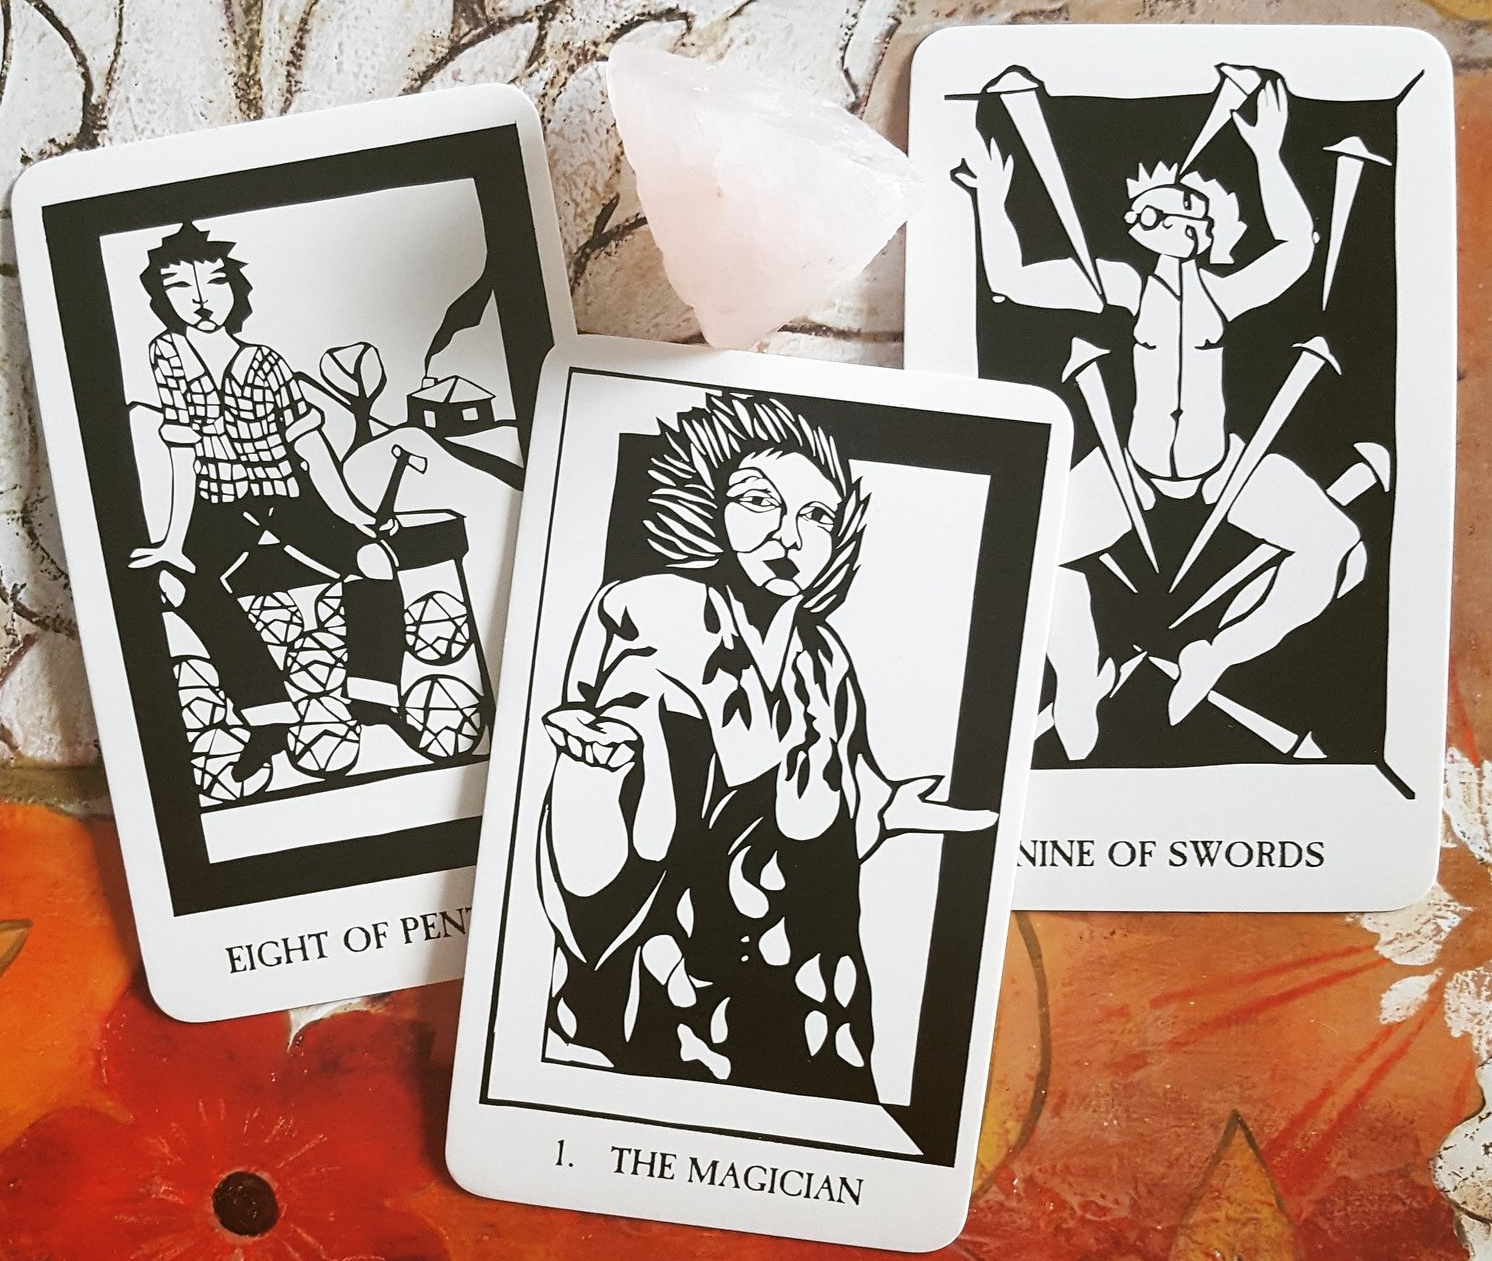 classic and timeless, Thea's Tarot